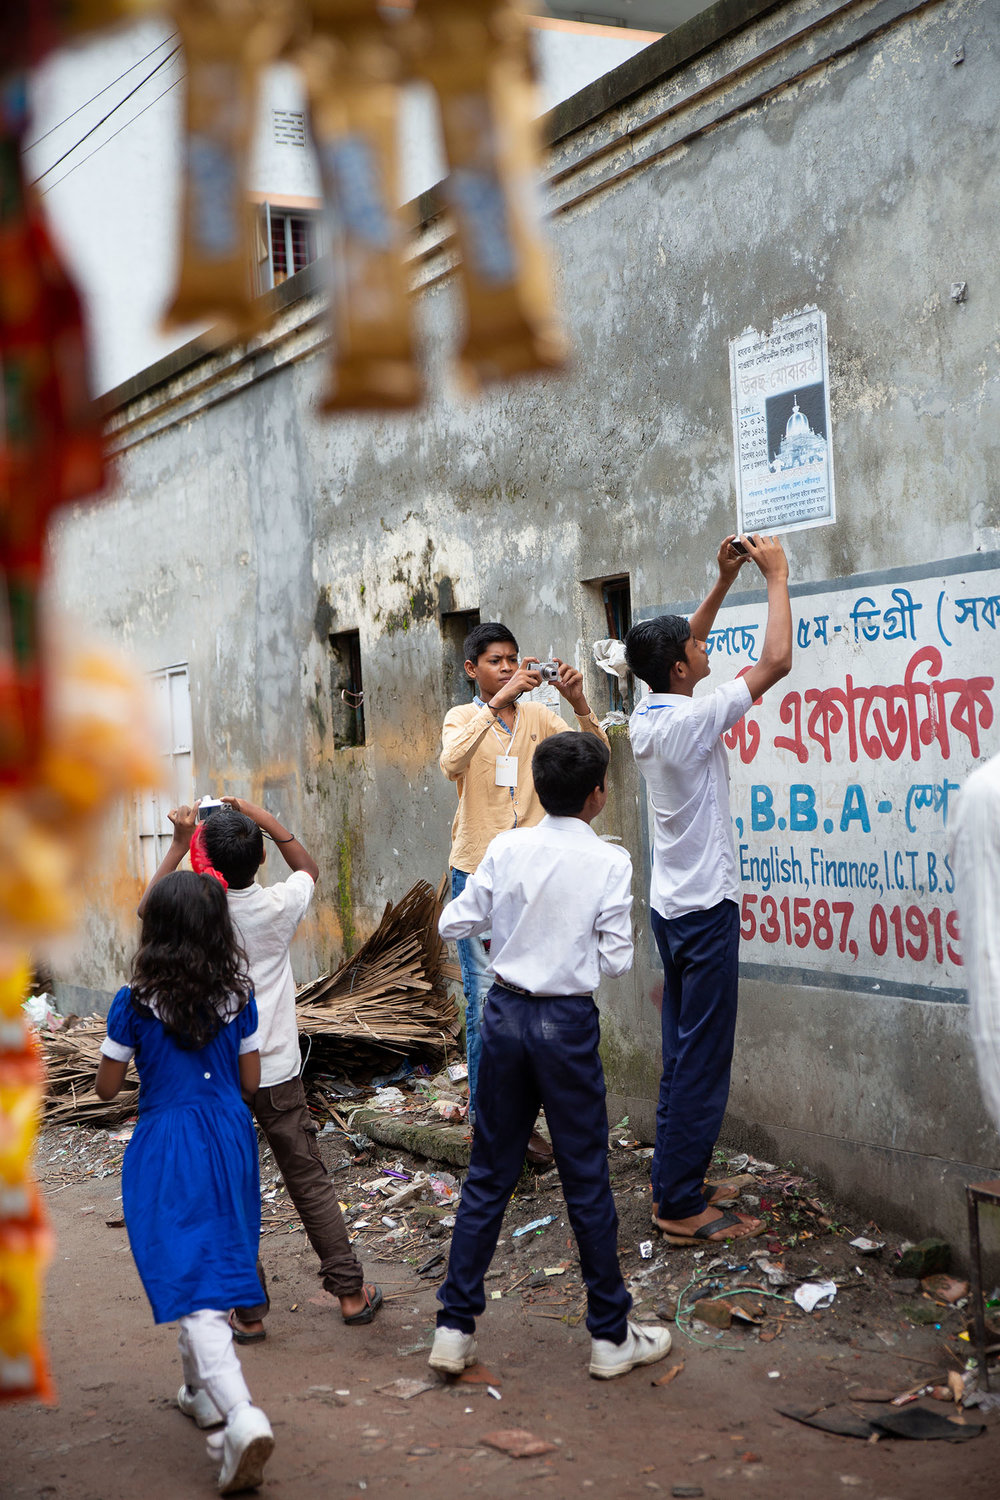 Students taking pictures for the Lesson 1 scavenger hunt, Nuru Chala neighborhood of Dhaka.